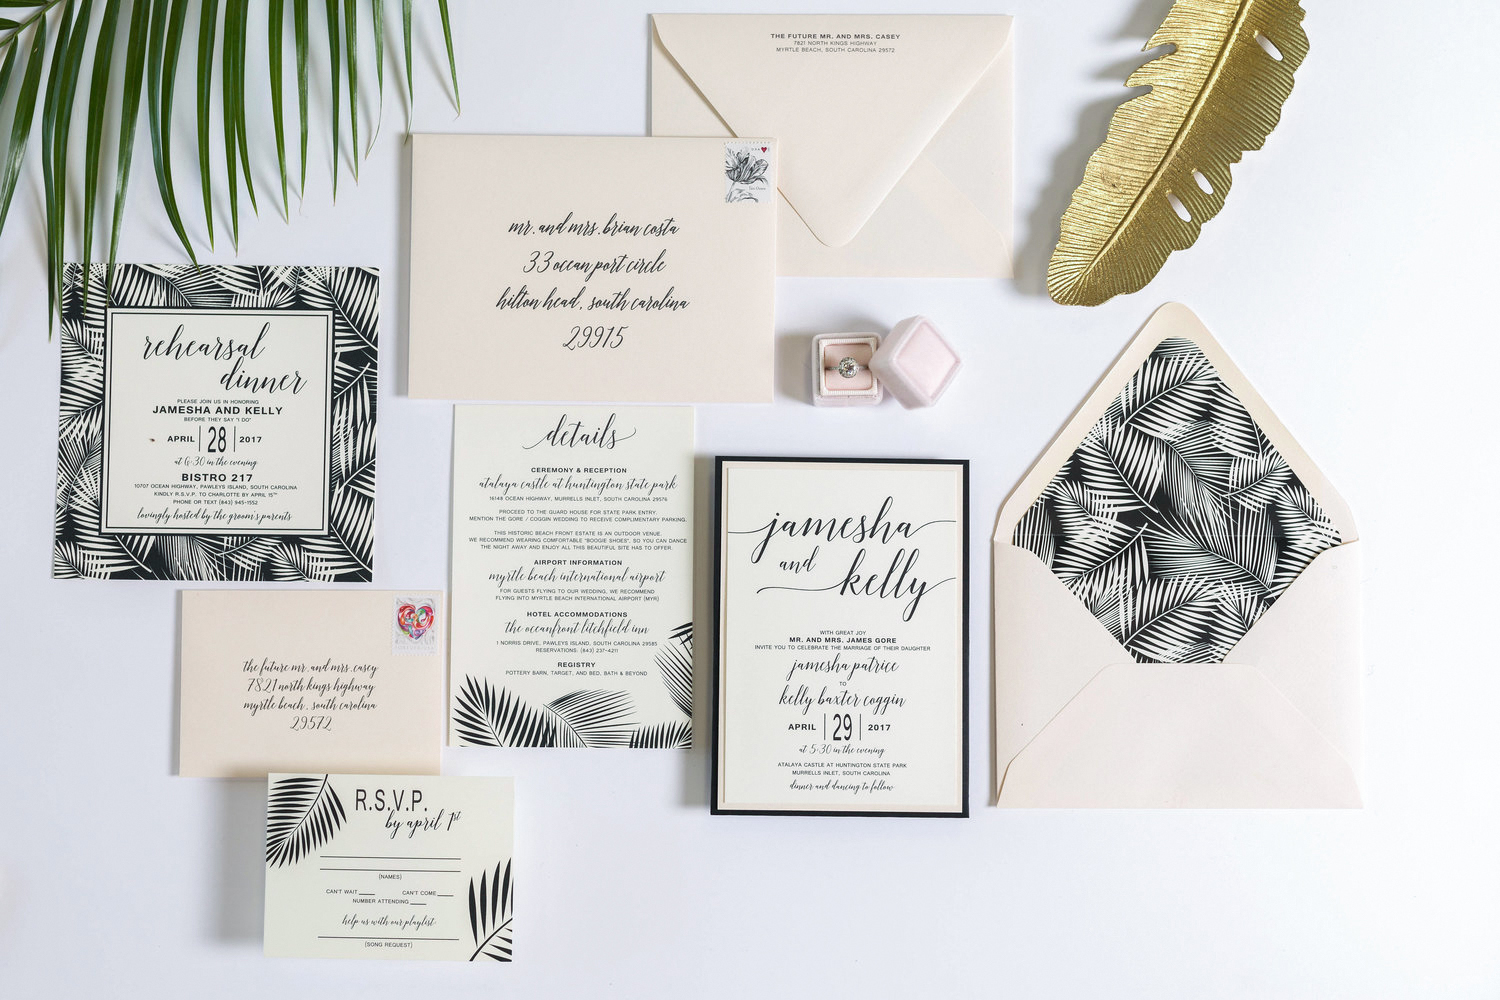 charlotte+and+lily+custom+invitation_palm_southern wedding_modern wedding invitation.jpg